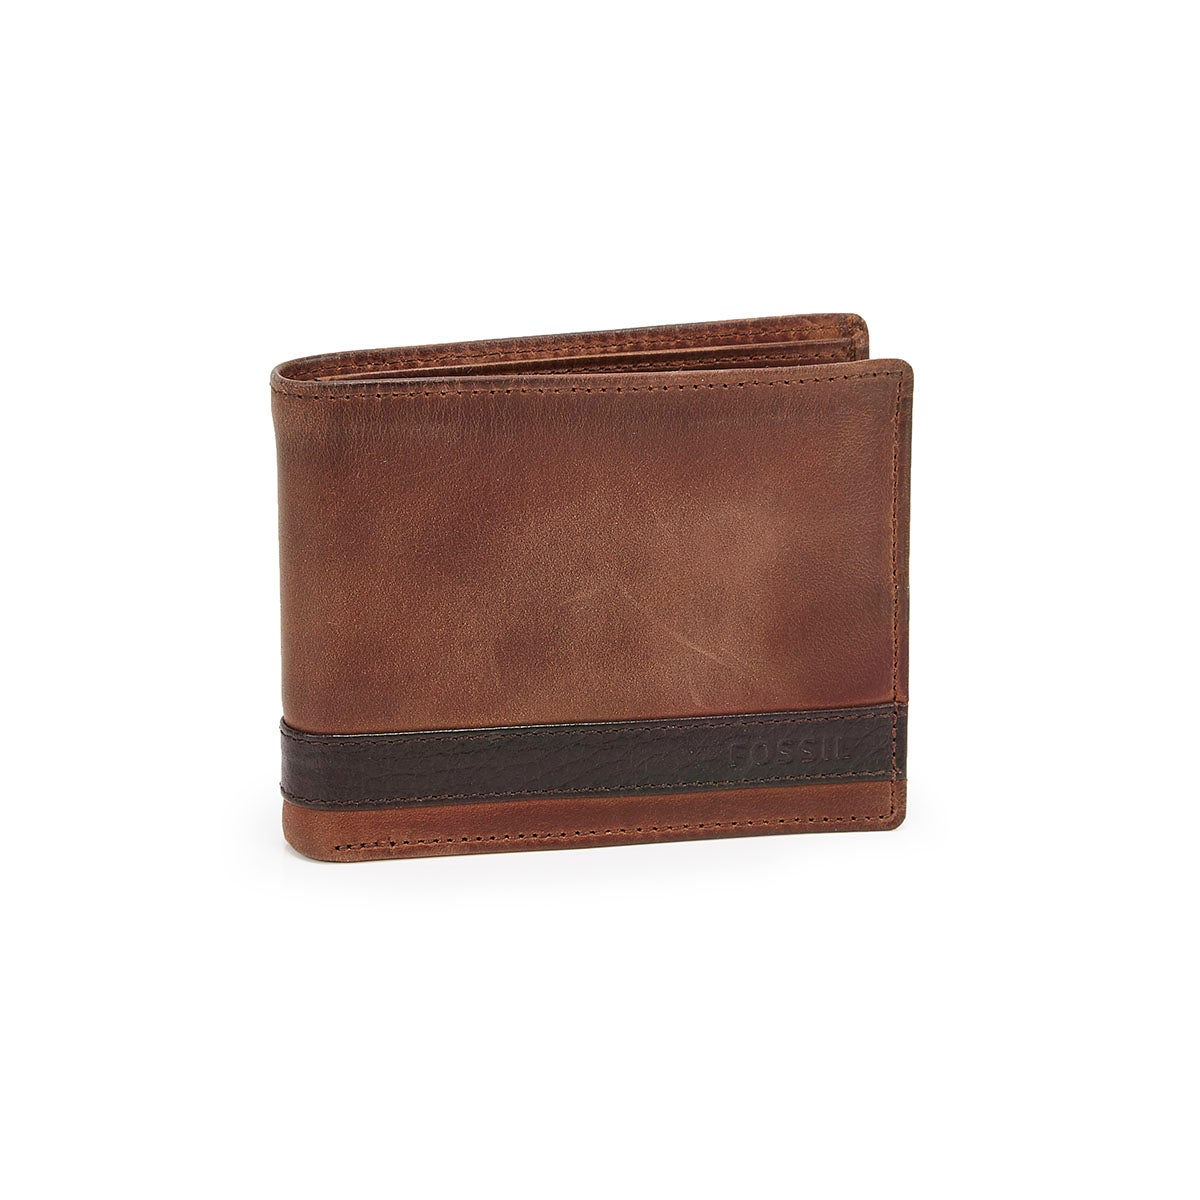 Men's QUINN bifold flip ID brown wallet